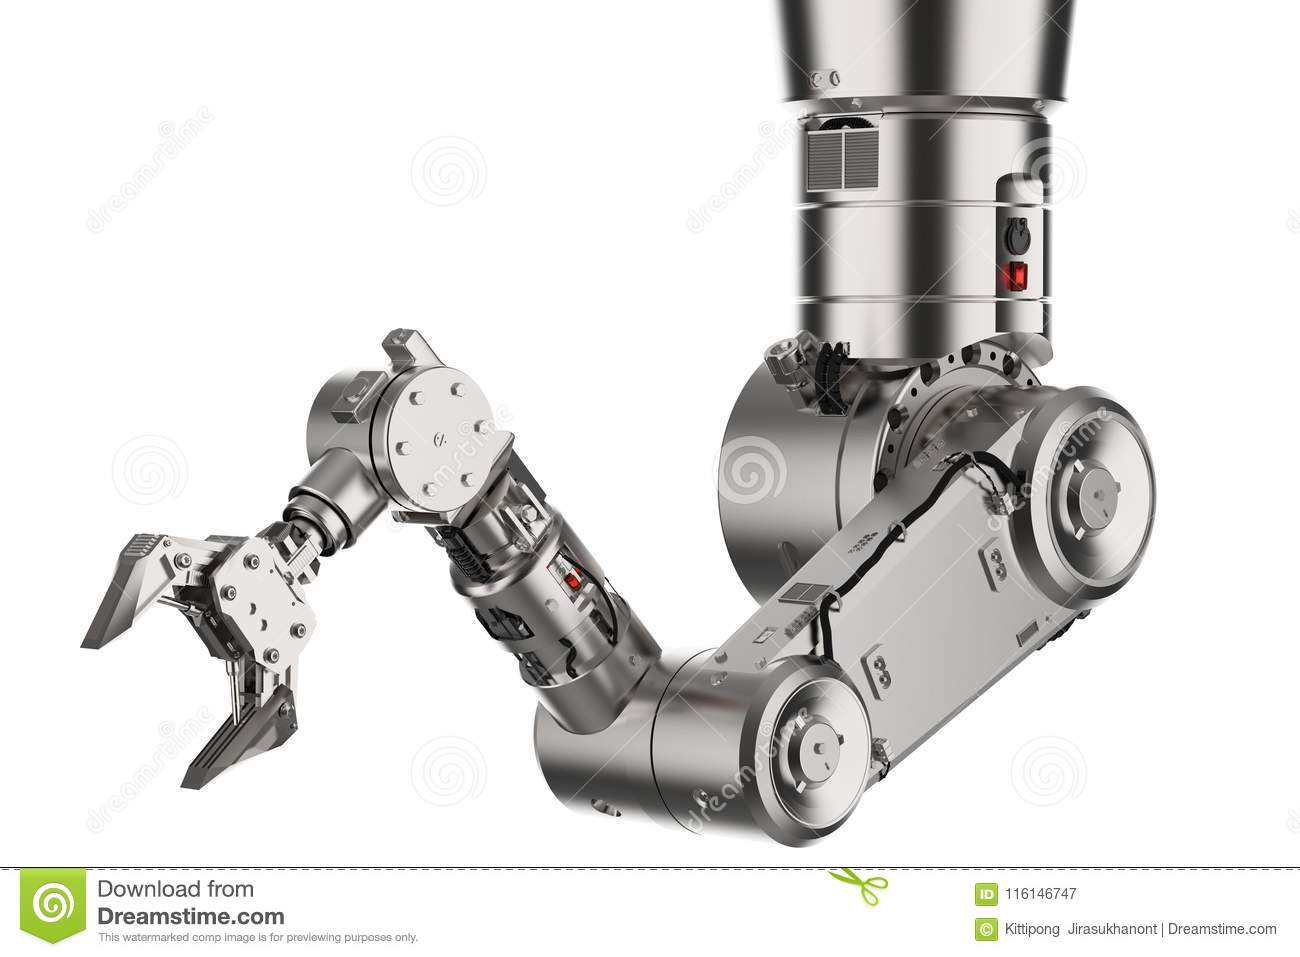 Robotic arm or robot hand stock illustration  Illustration of